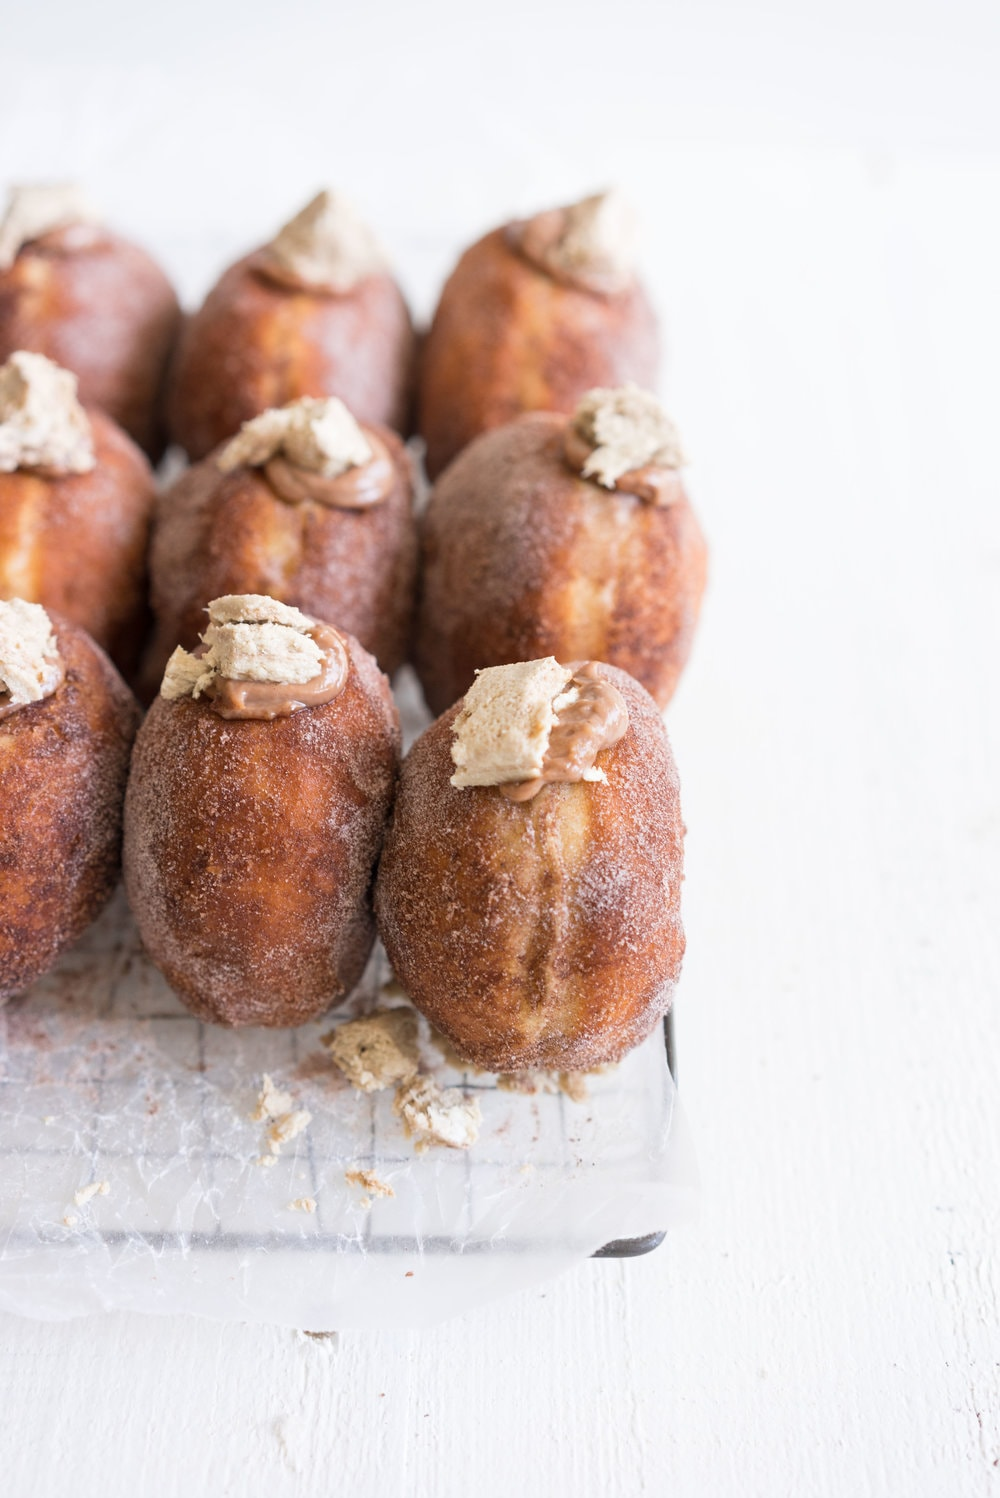 Brioche doughnuts filled with chocolate tahini pastry cream and topped with Halva